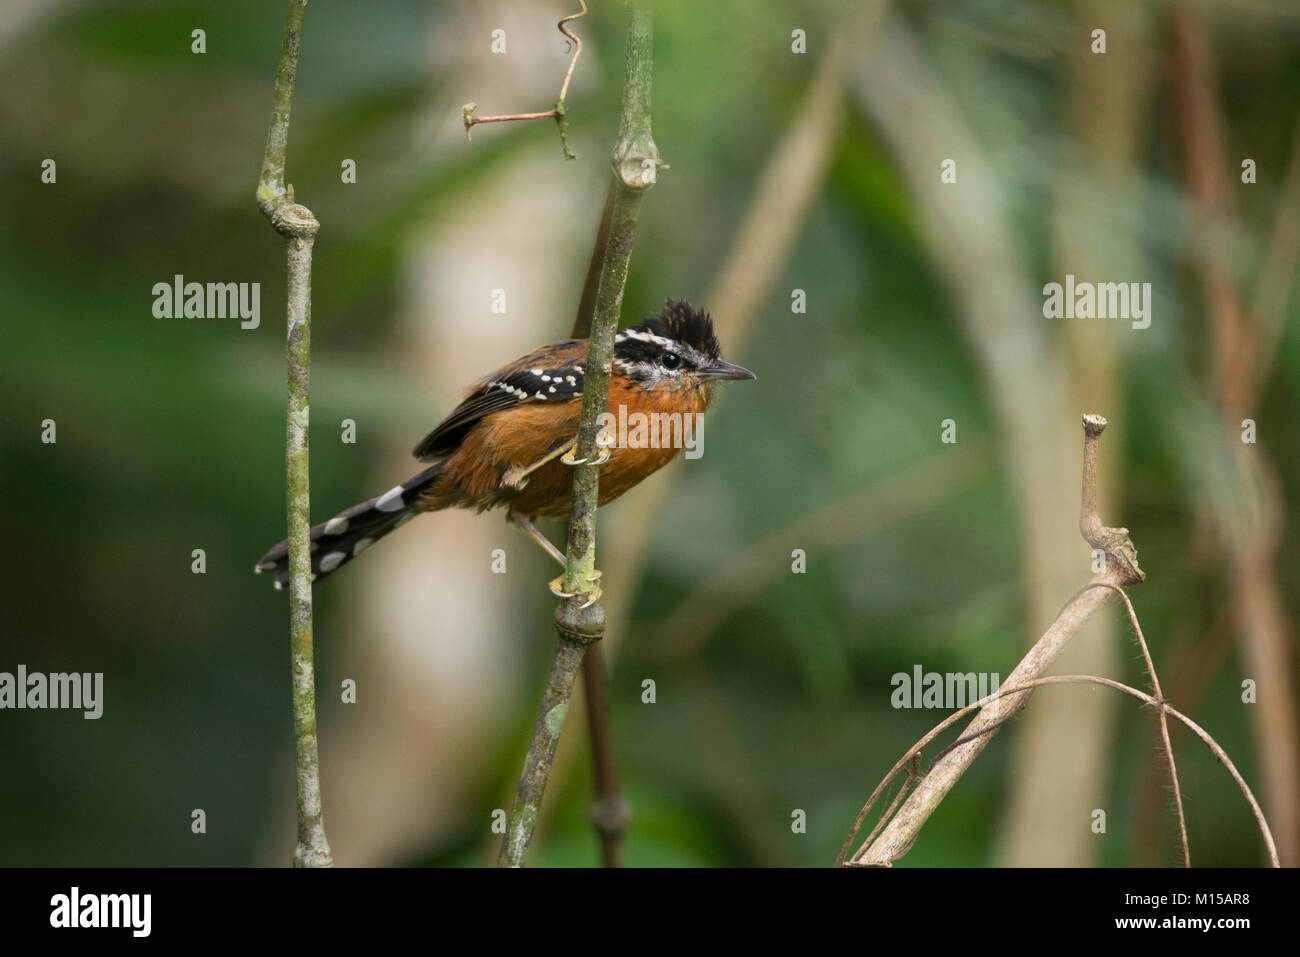 A Ferruginous Antbird (Drymophila ferruginea) from SE Brazil's Atlantic Rainforest - Stock Image